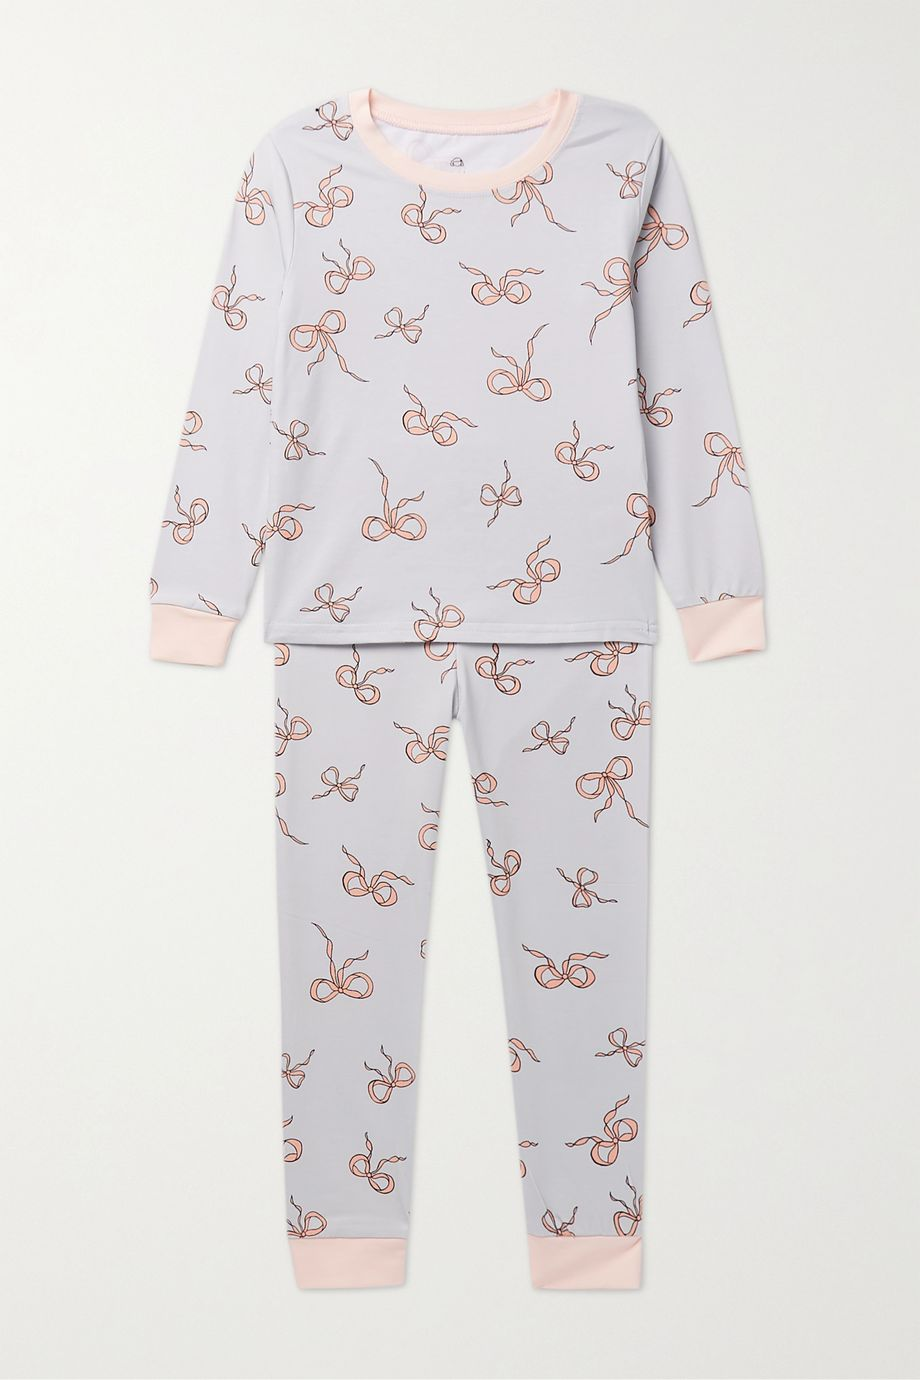 Morgan Lane Kids Lulu ages 1 - 8 printed stretch-jersey pajama set